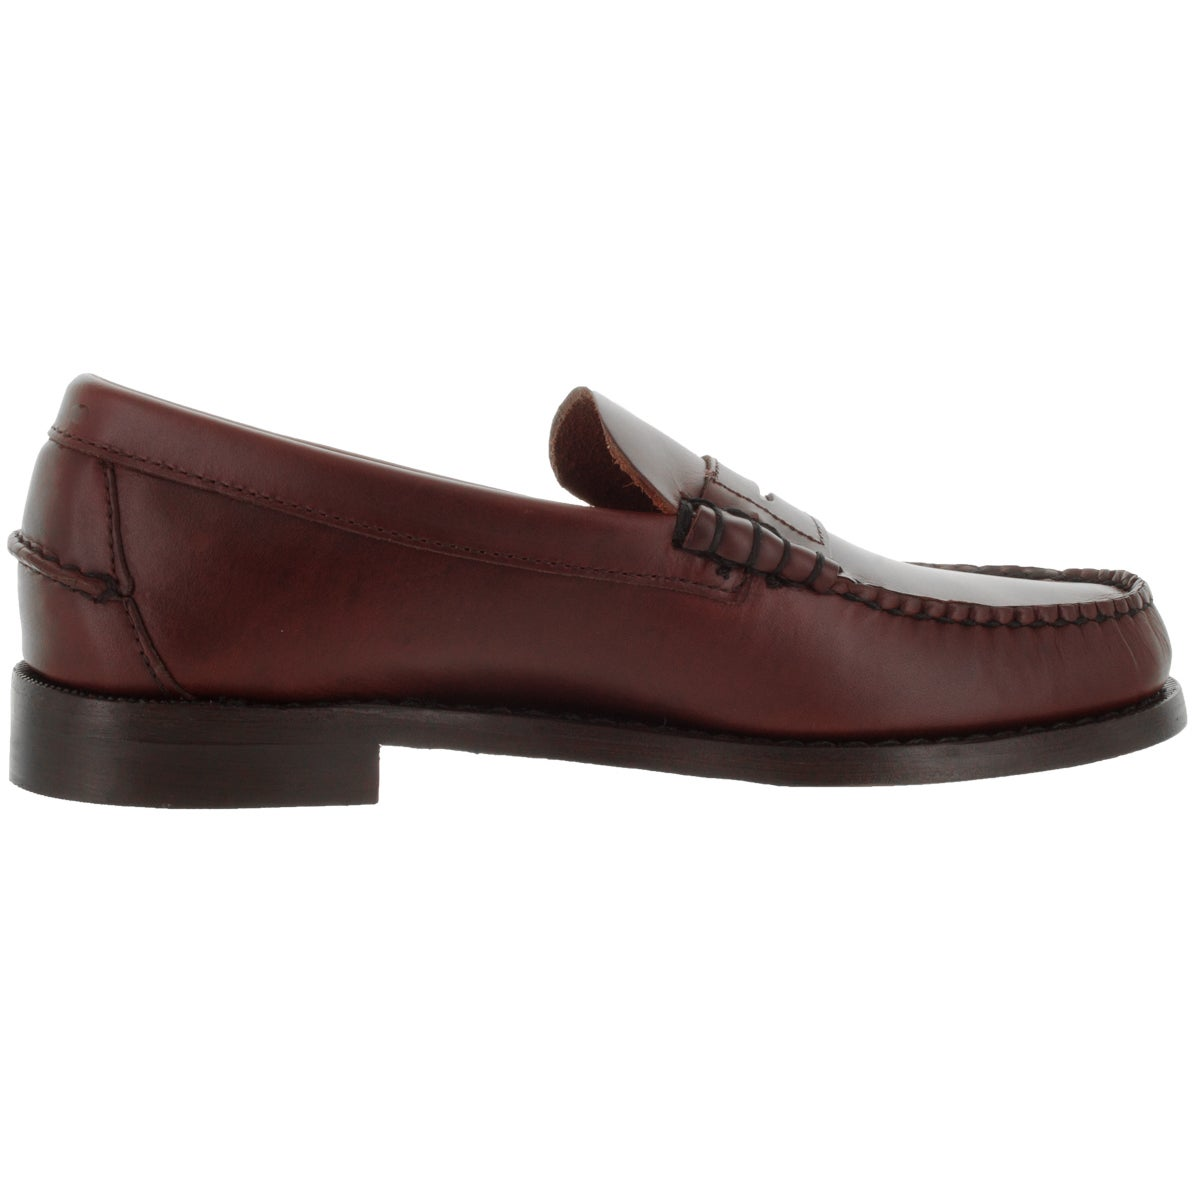 5d81d704f40 Shop Sebago Men s Classic E Brown Oiled Waxy Loafers   Slip-Ons Shoe - Free  Shipping Today - Overstock - 12328368